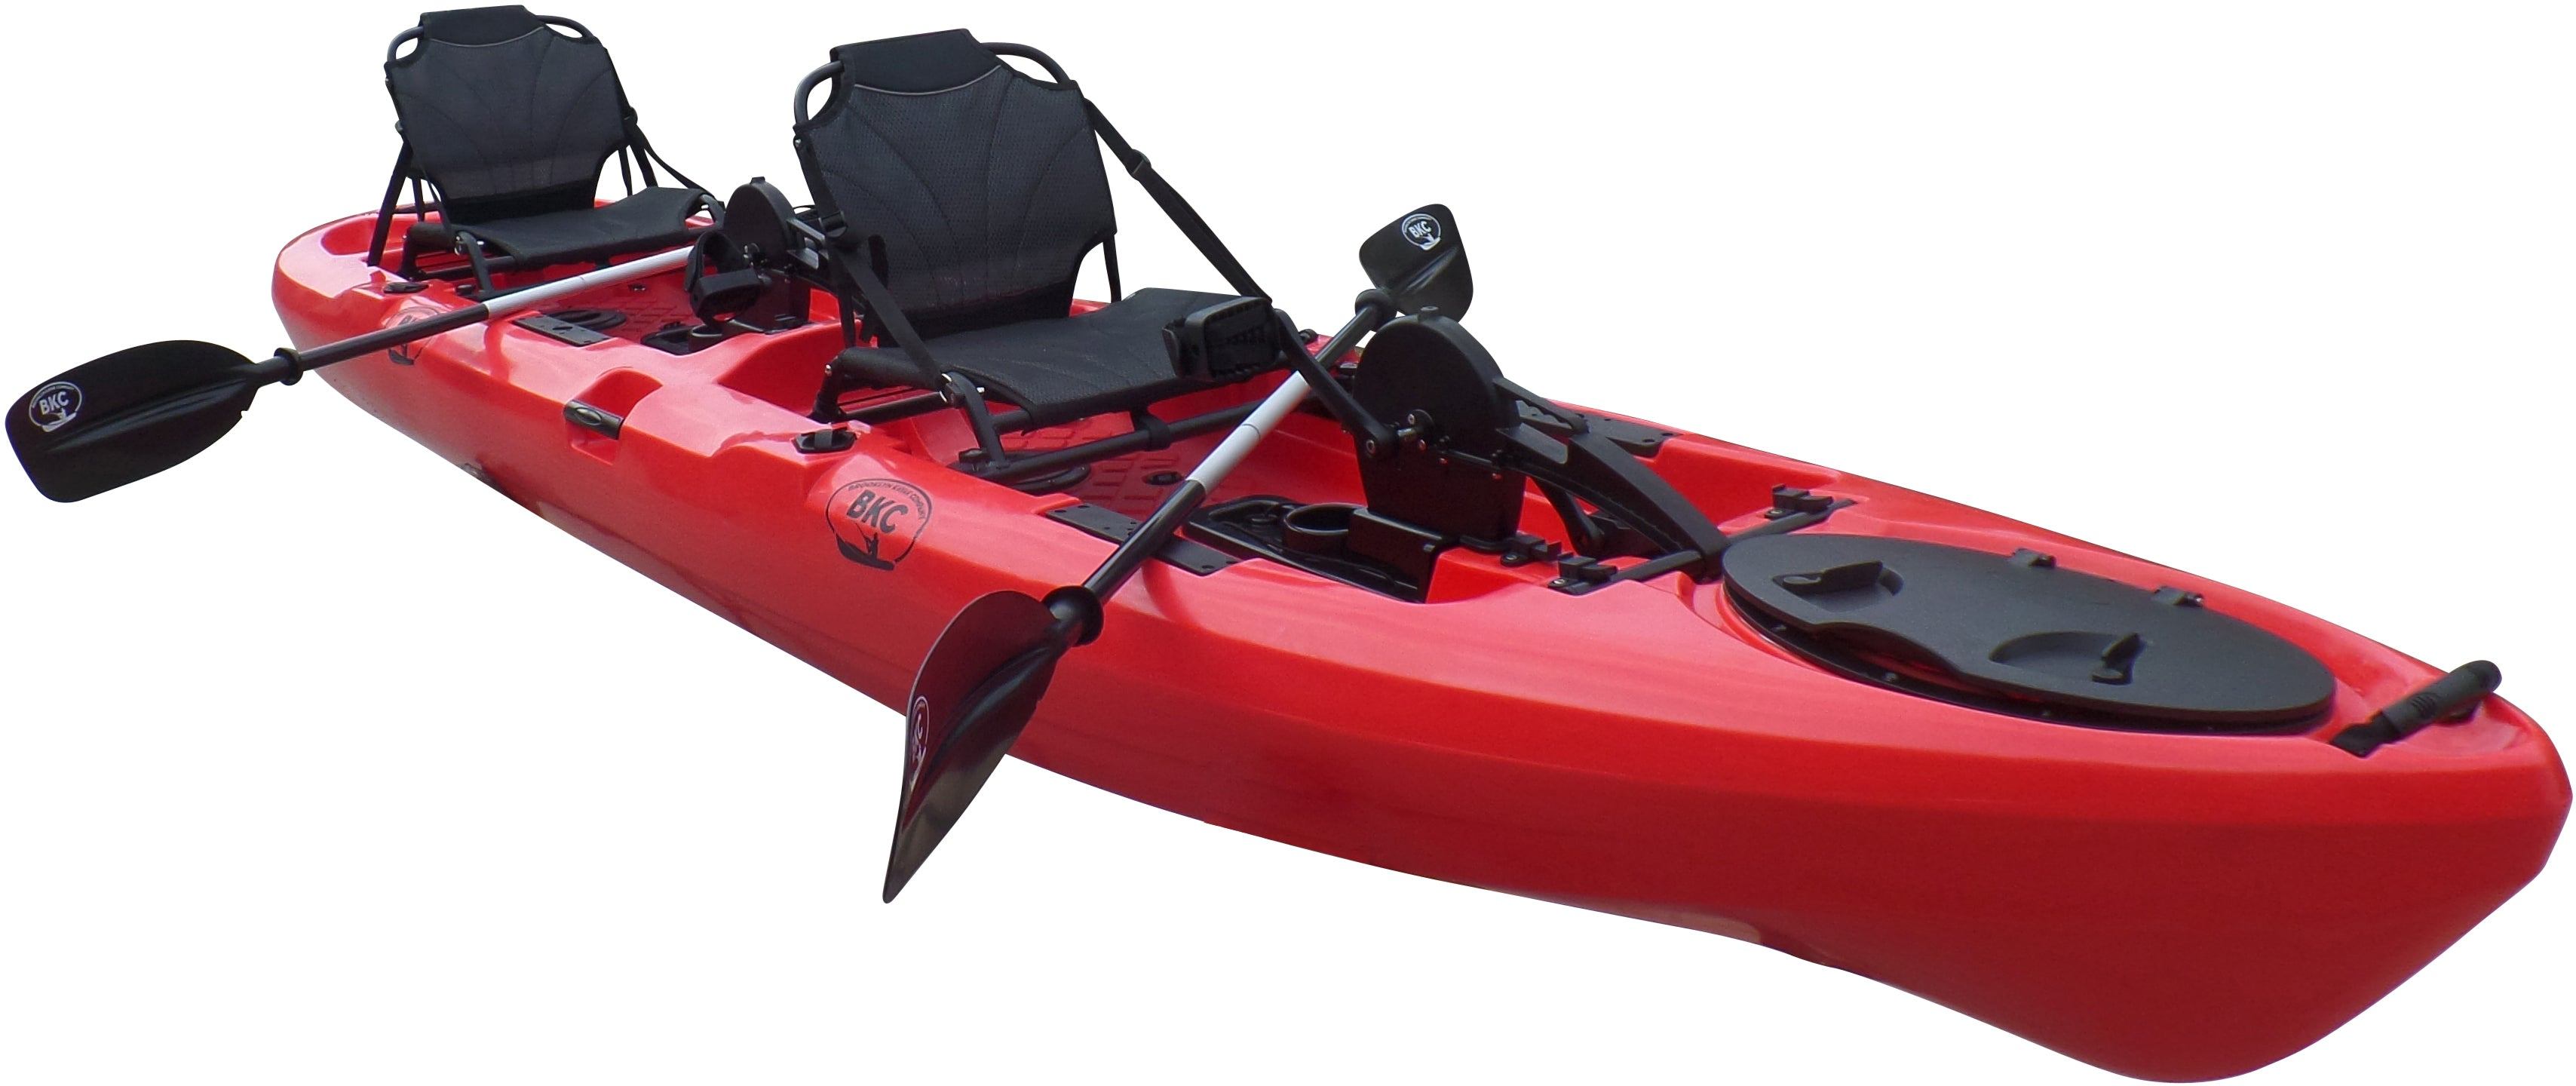 Bkc Uh Pk14 14 Foot Sit On Top Tandem Fishing Pedal Drive Kayak Upright Seats Included